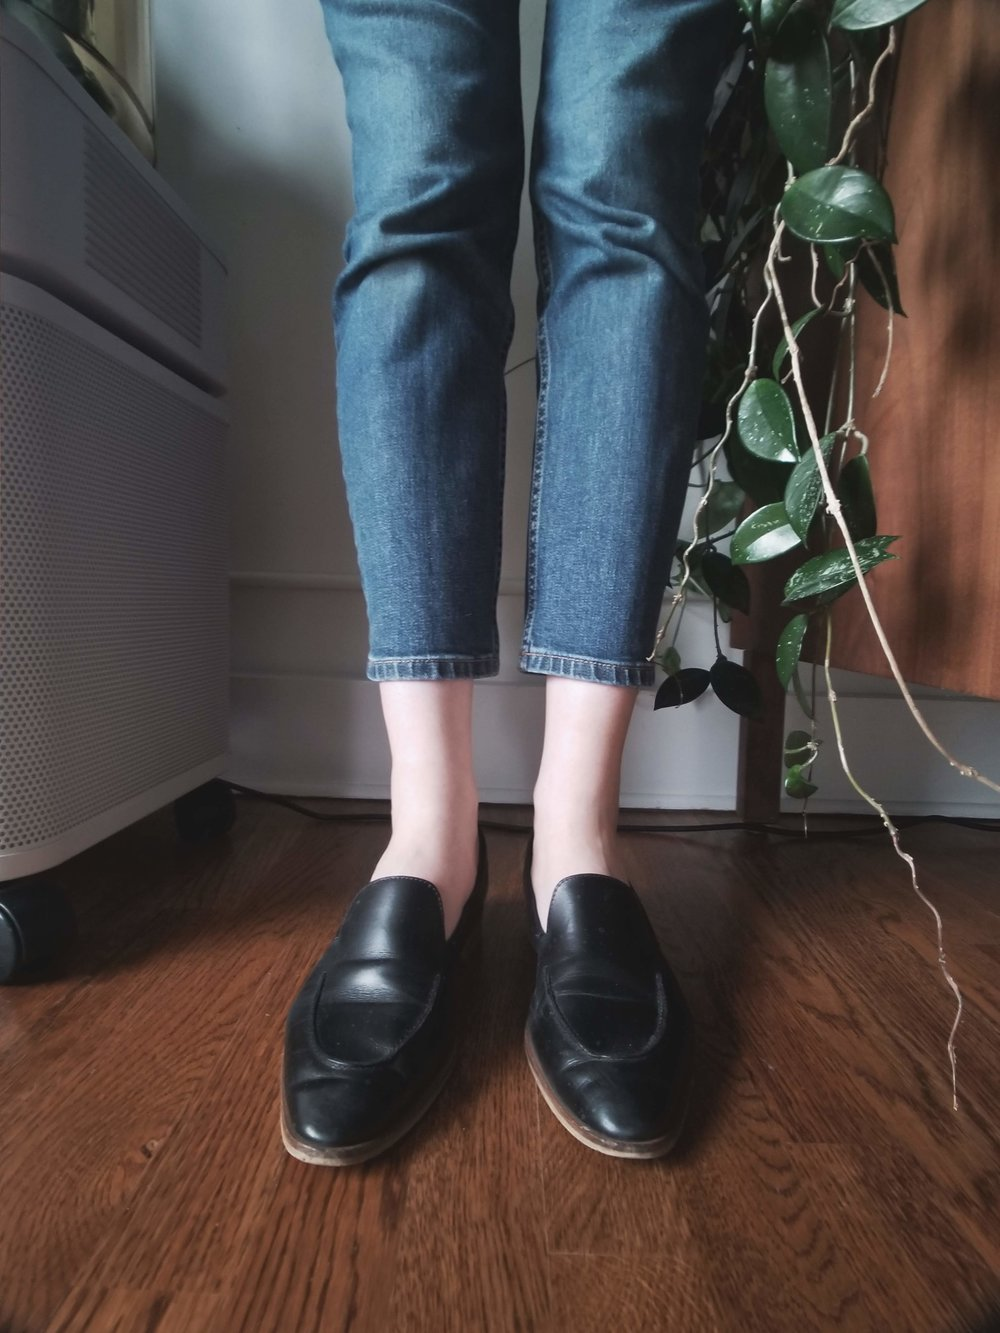 Jeans & loafers forever.